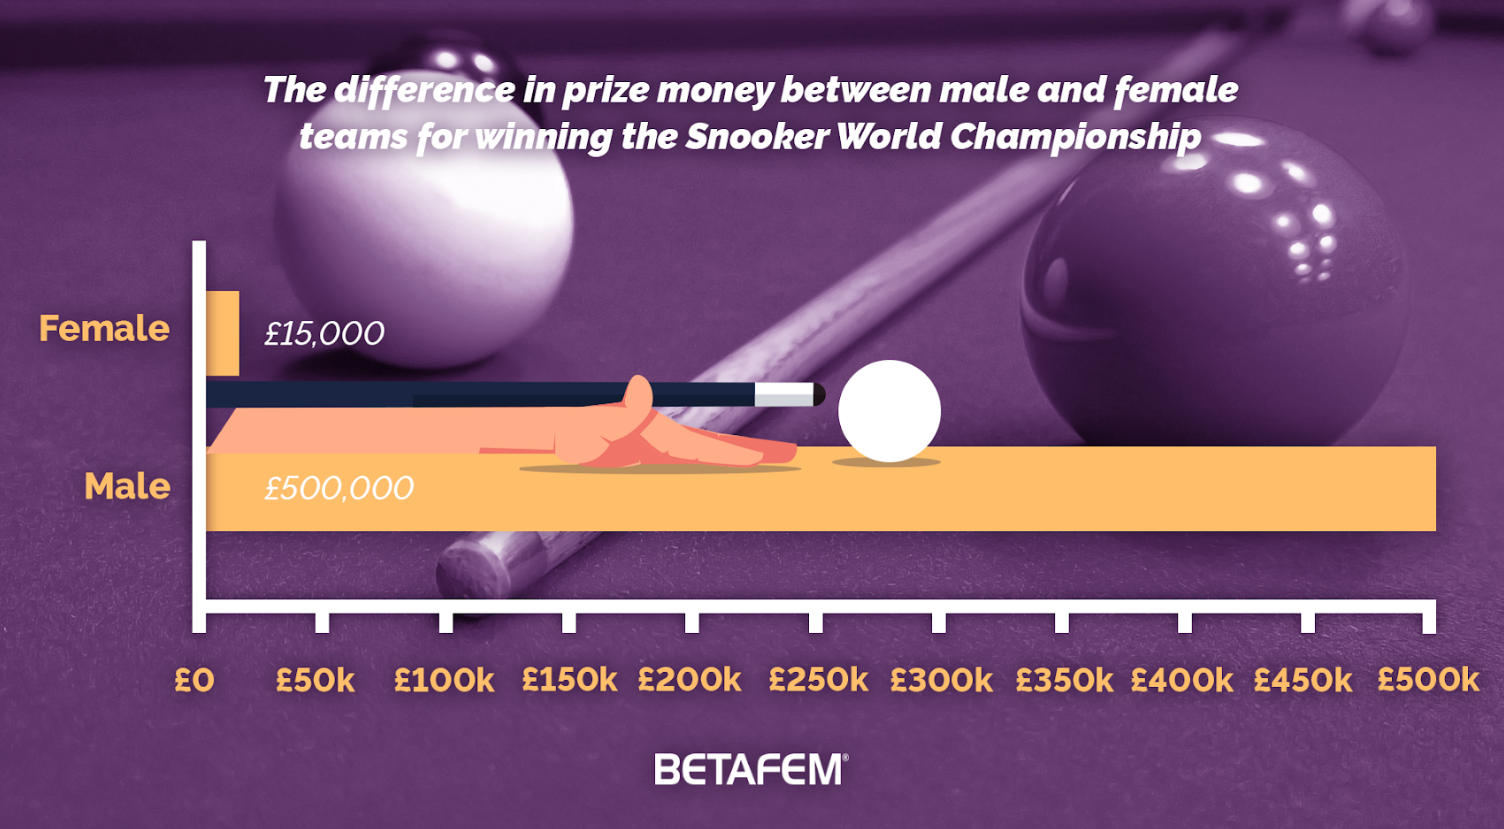 Prize money differences between male and female teams winning snooker world championship